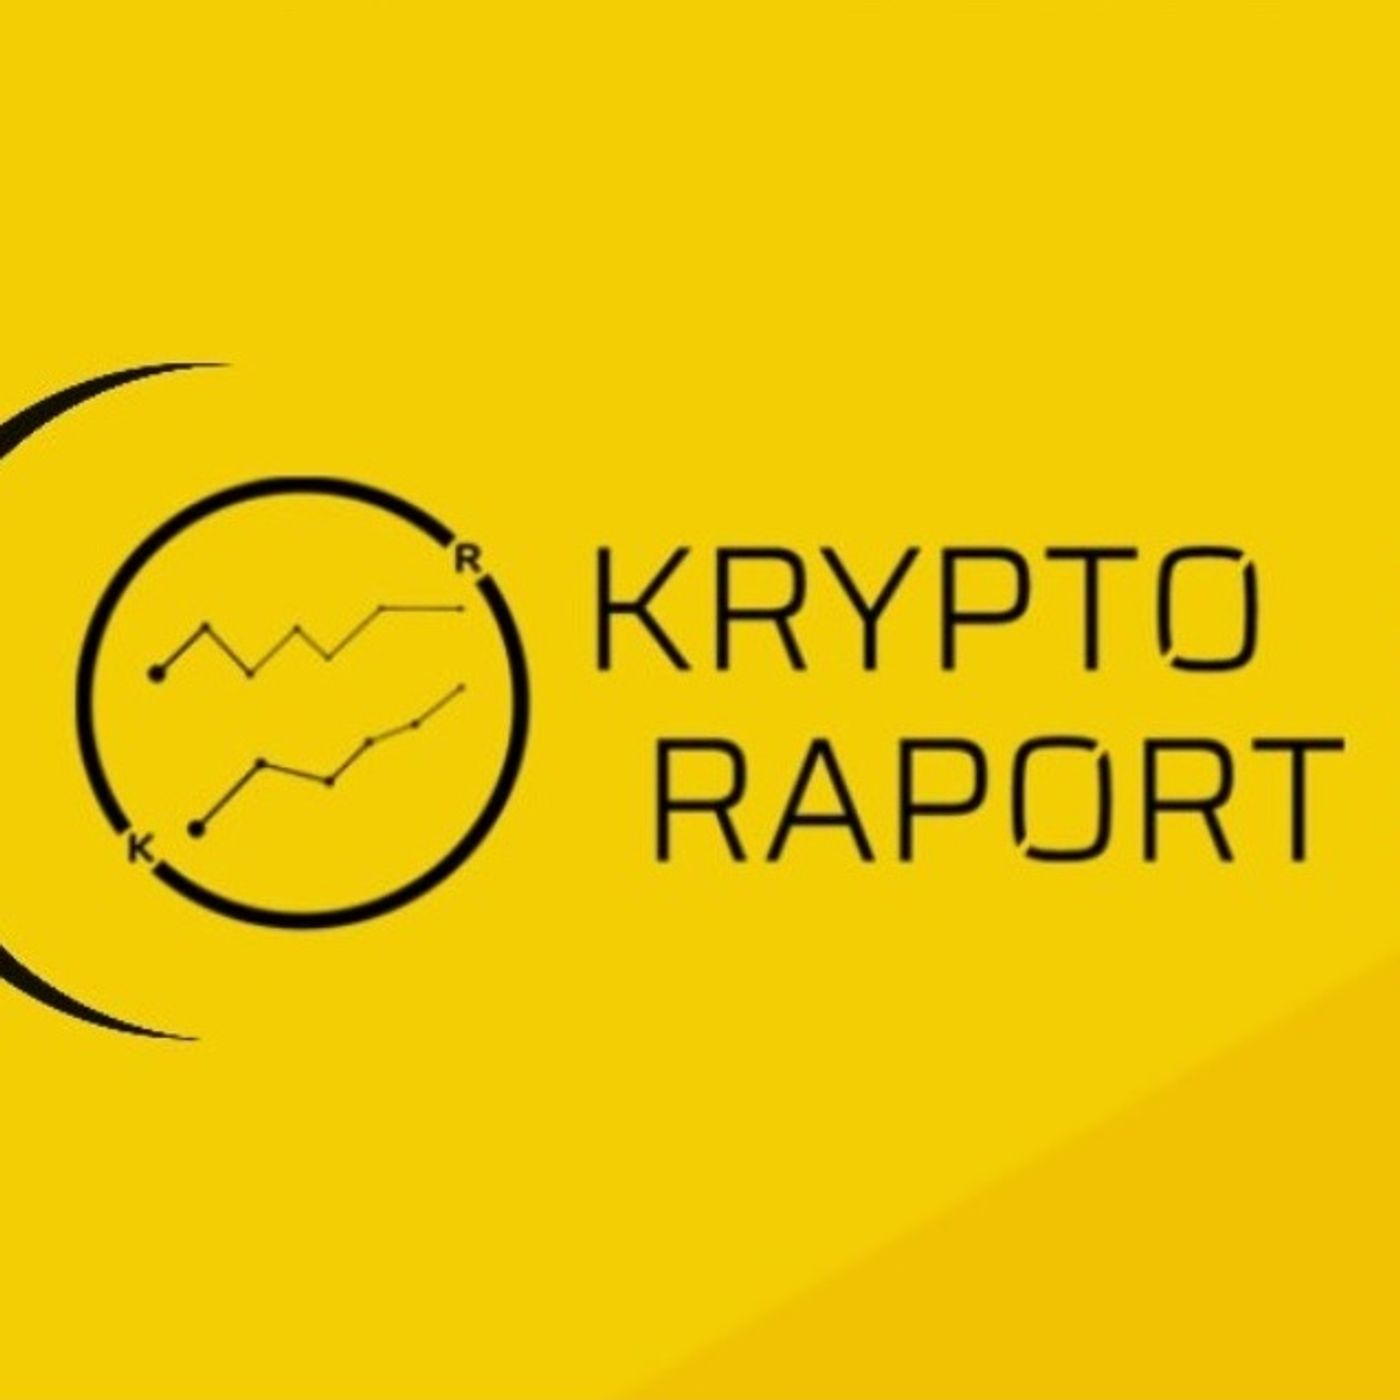 KRYPTO RAPORT - Co tam w sieci?